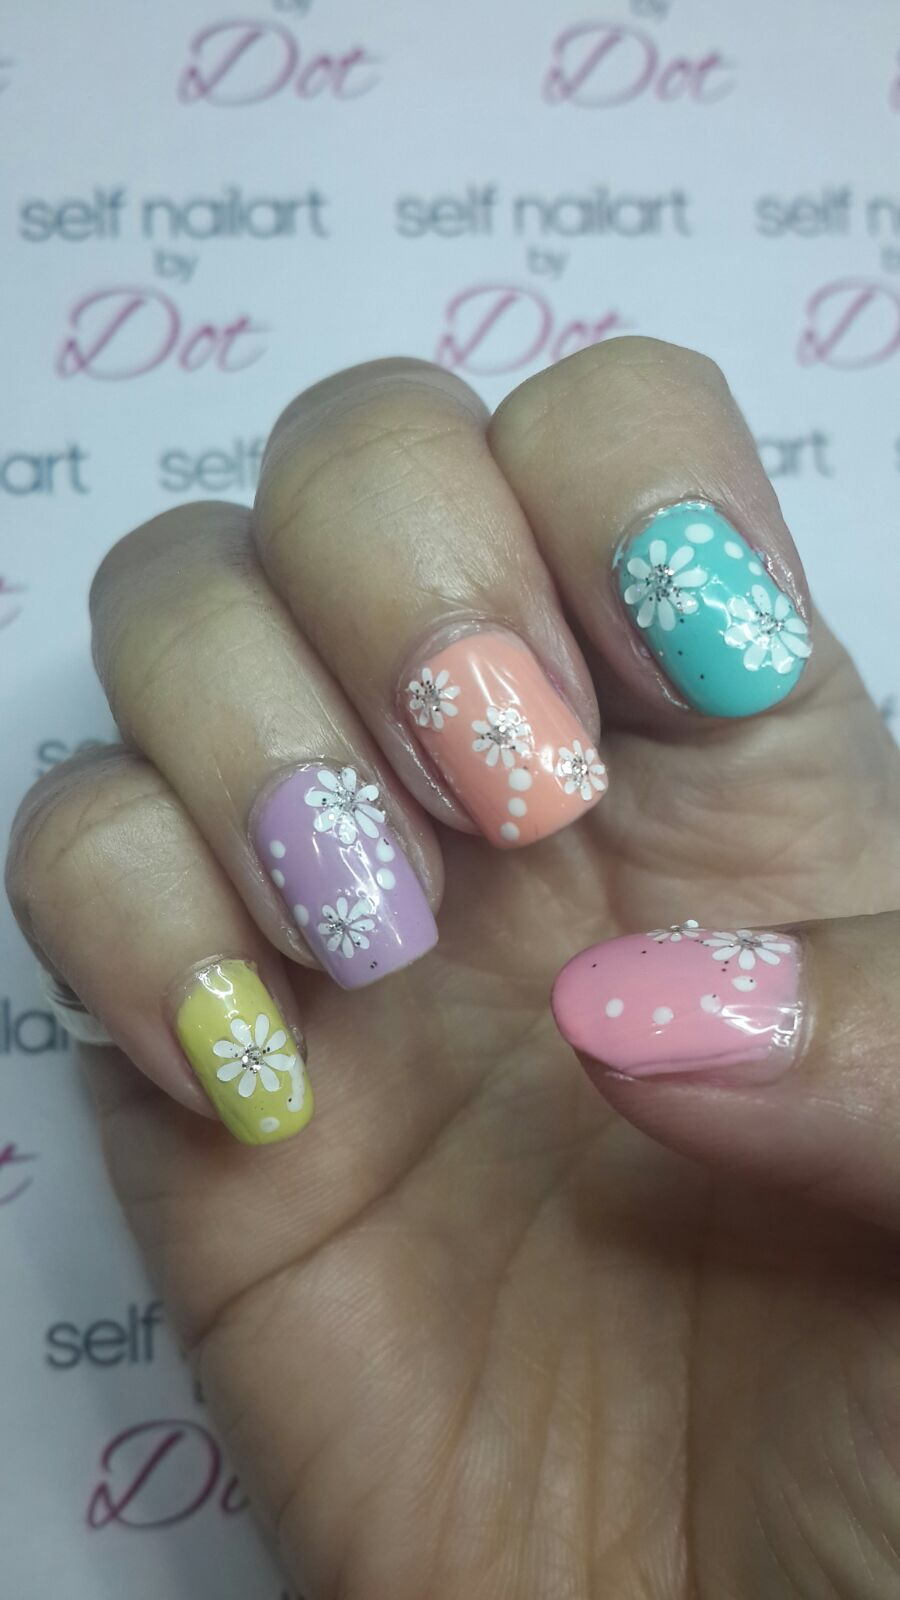 Pastel colored nails with floral decal nailart